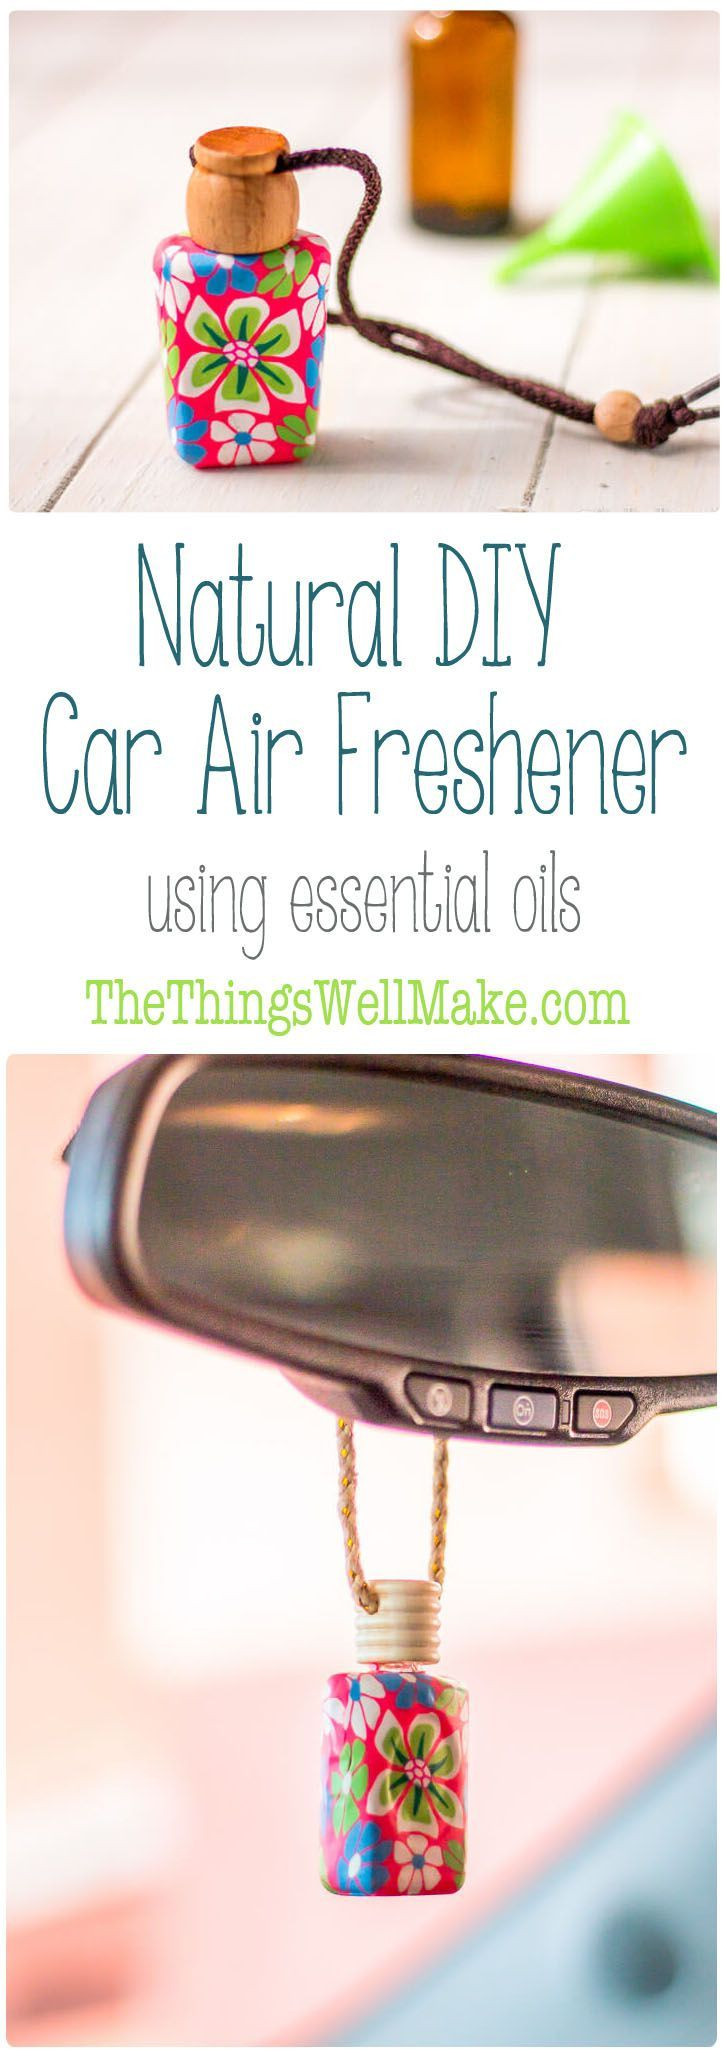 Best ideas about DIY Car Air Freshener . Save or Pin 5764 best The Real Creative Life images on Pinterest Now.